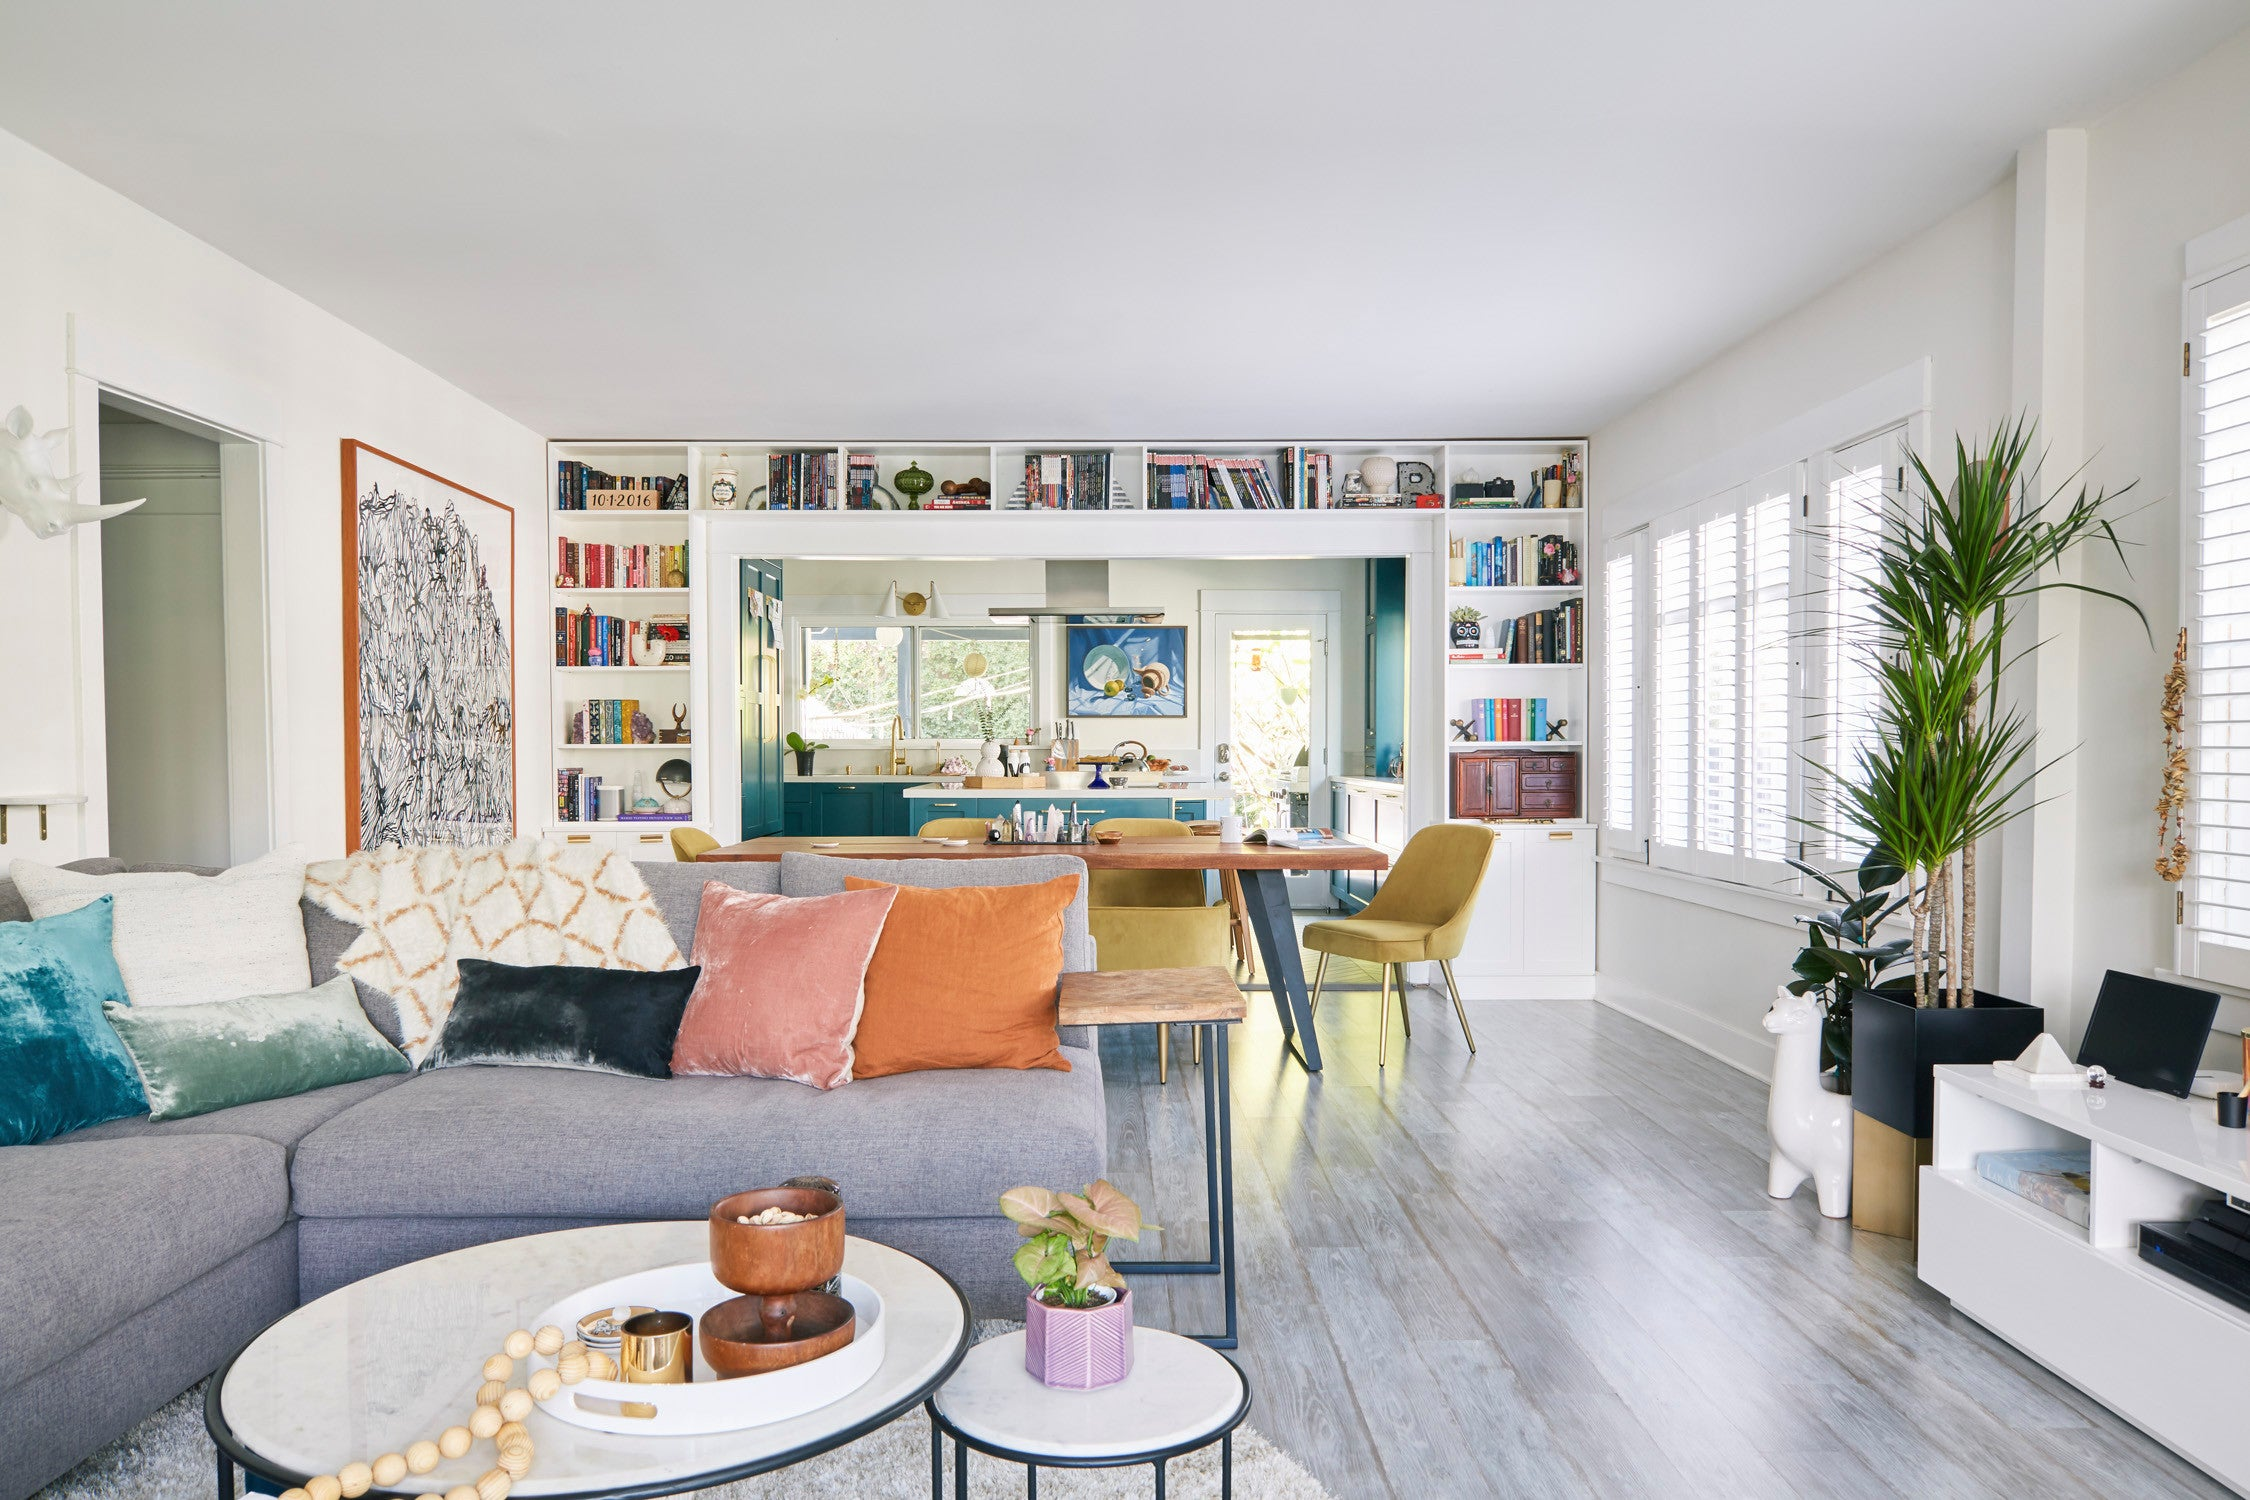 This Designer Renovated a 100-Year-Old Home While Pregnant